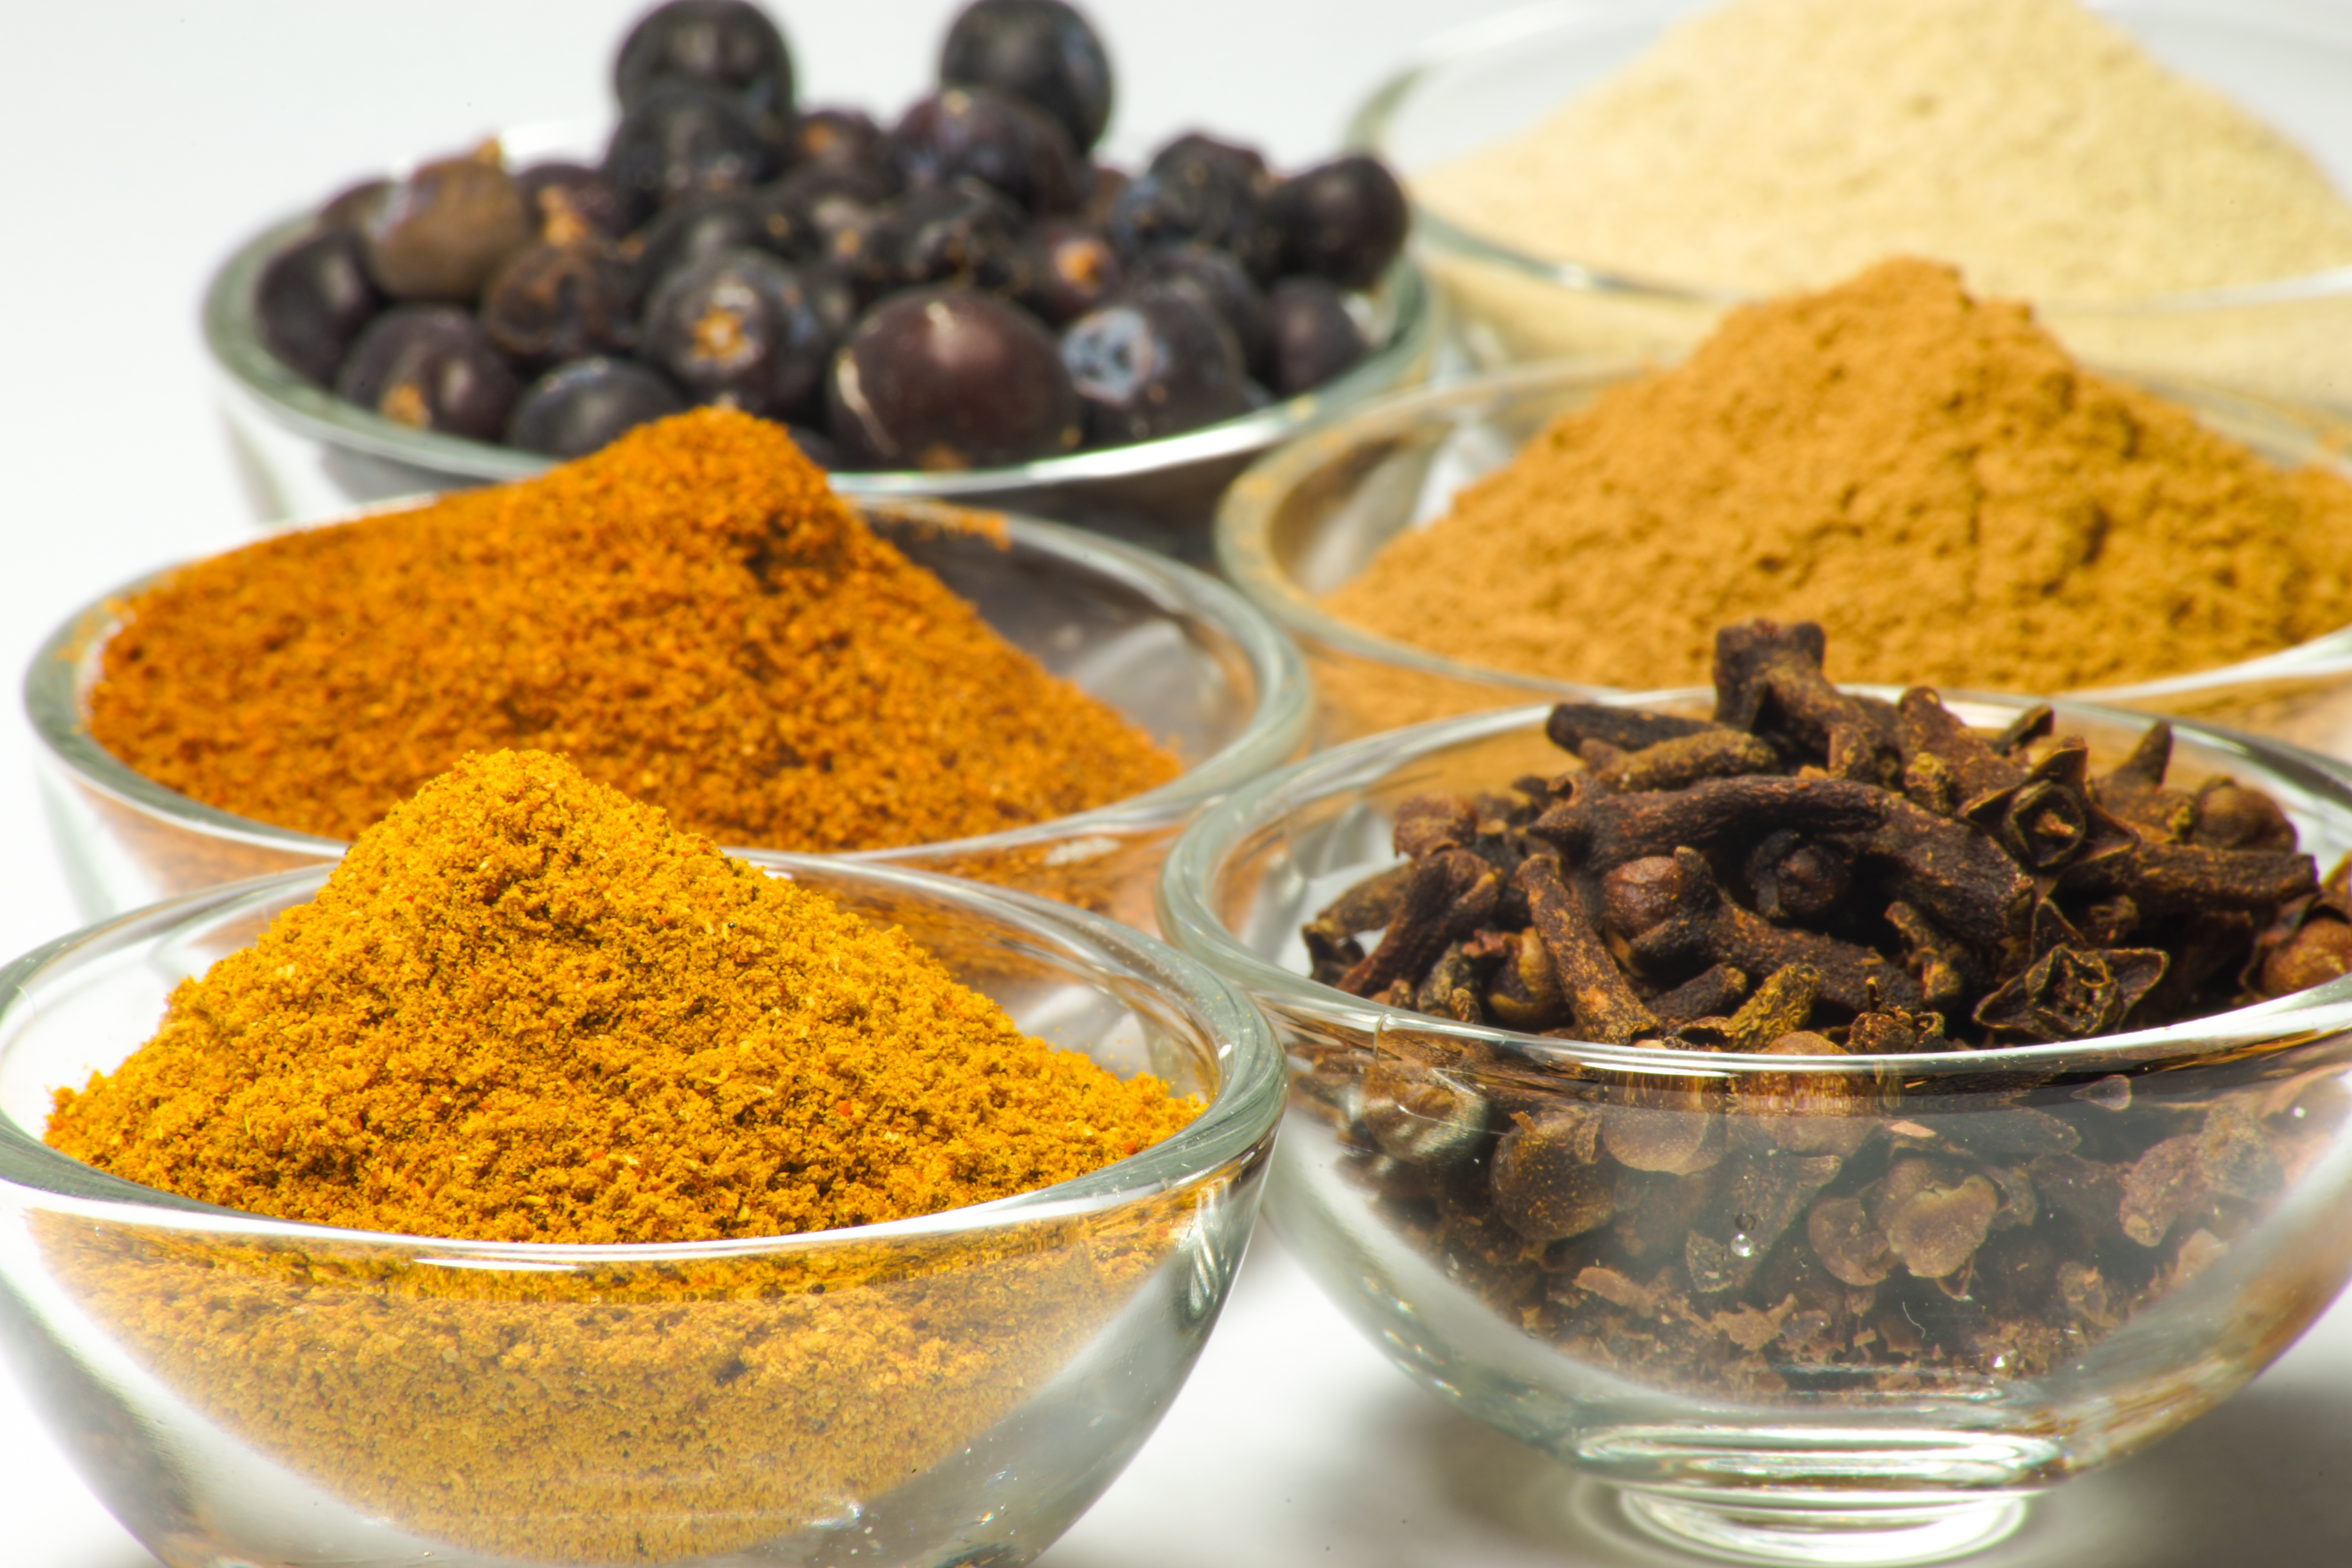 is turmeric a natural pain reliever?